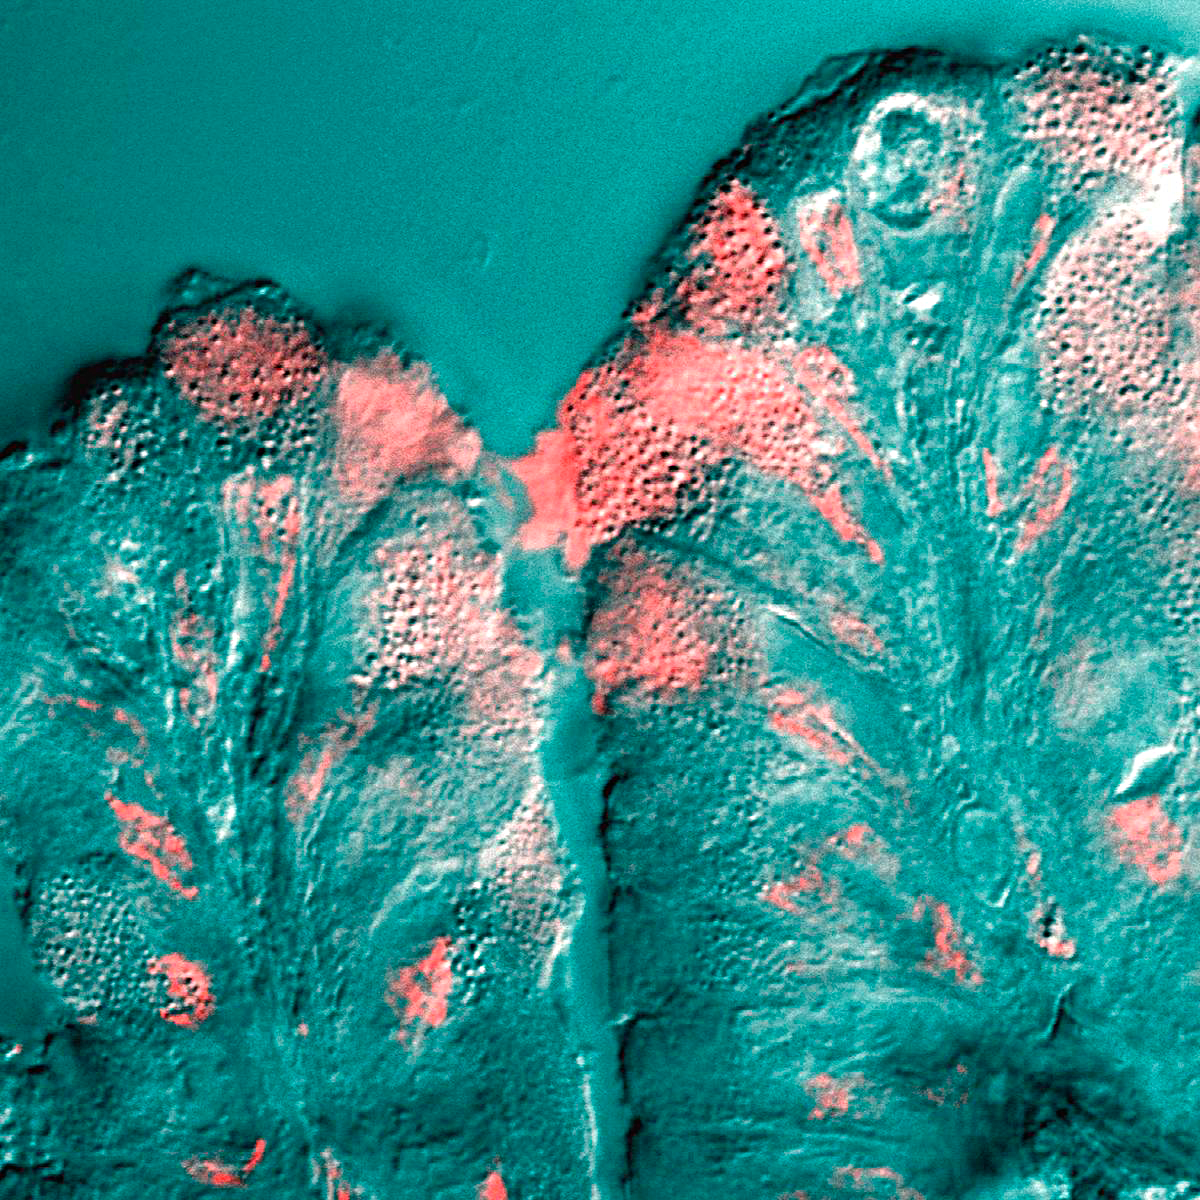 Mucus cells from plos biology used under creative commons license